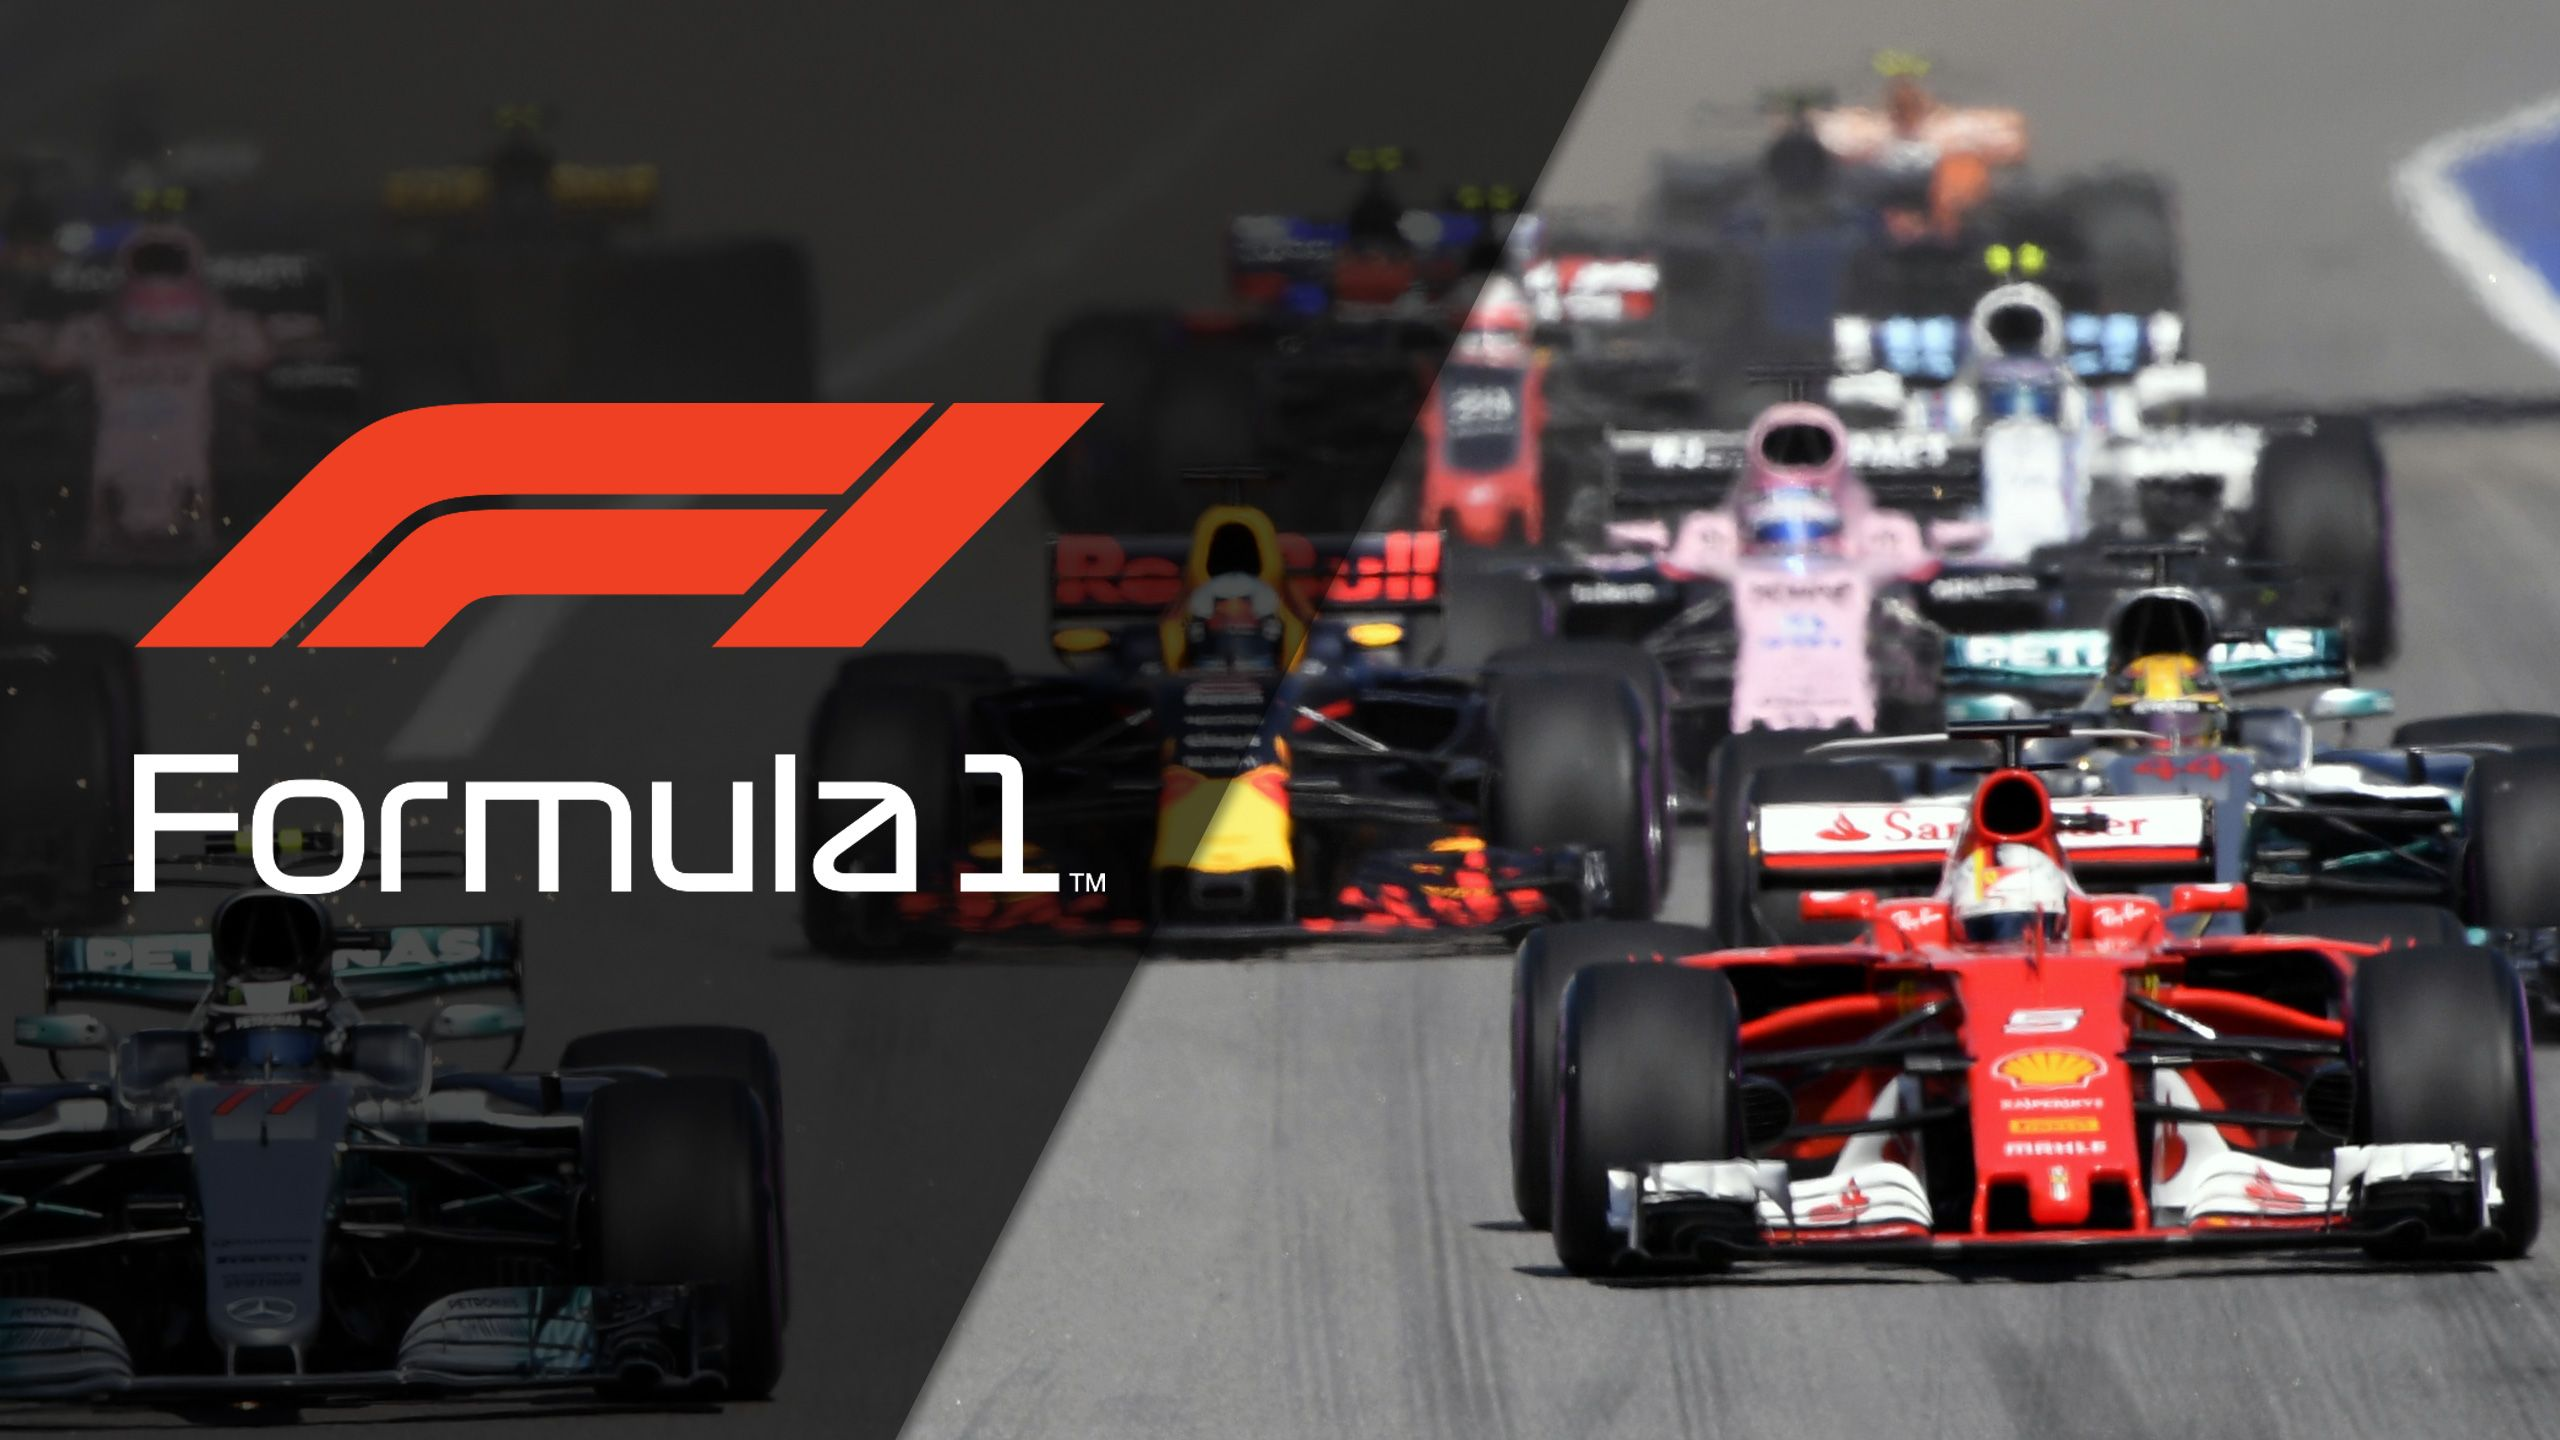 Formula 1 Pirelli French Grand Prix coverage presented by Mothers Polish